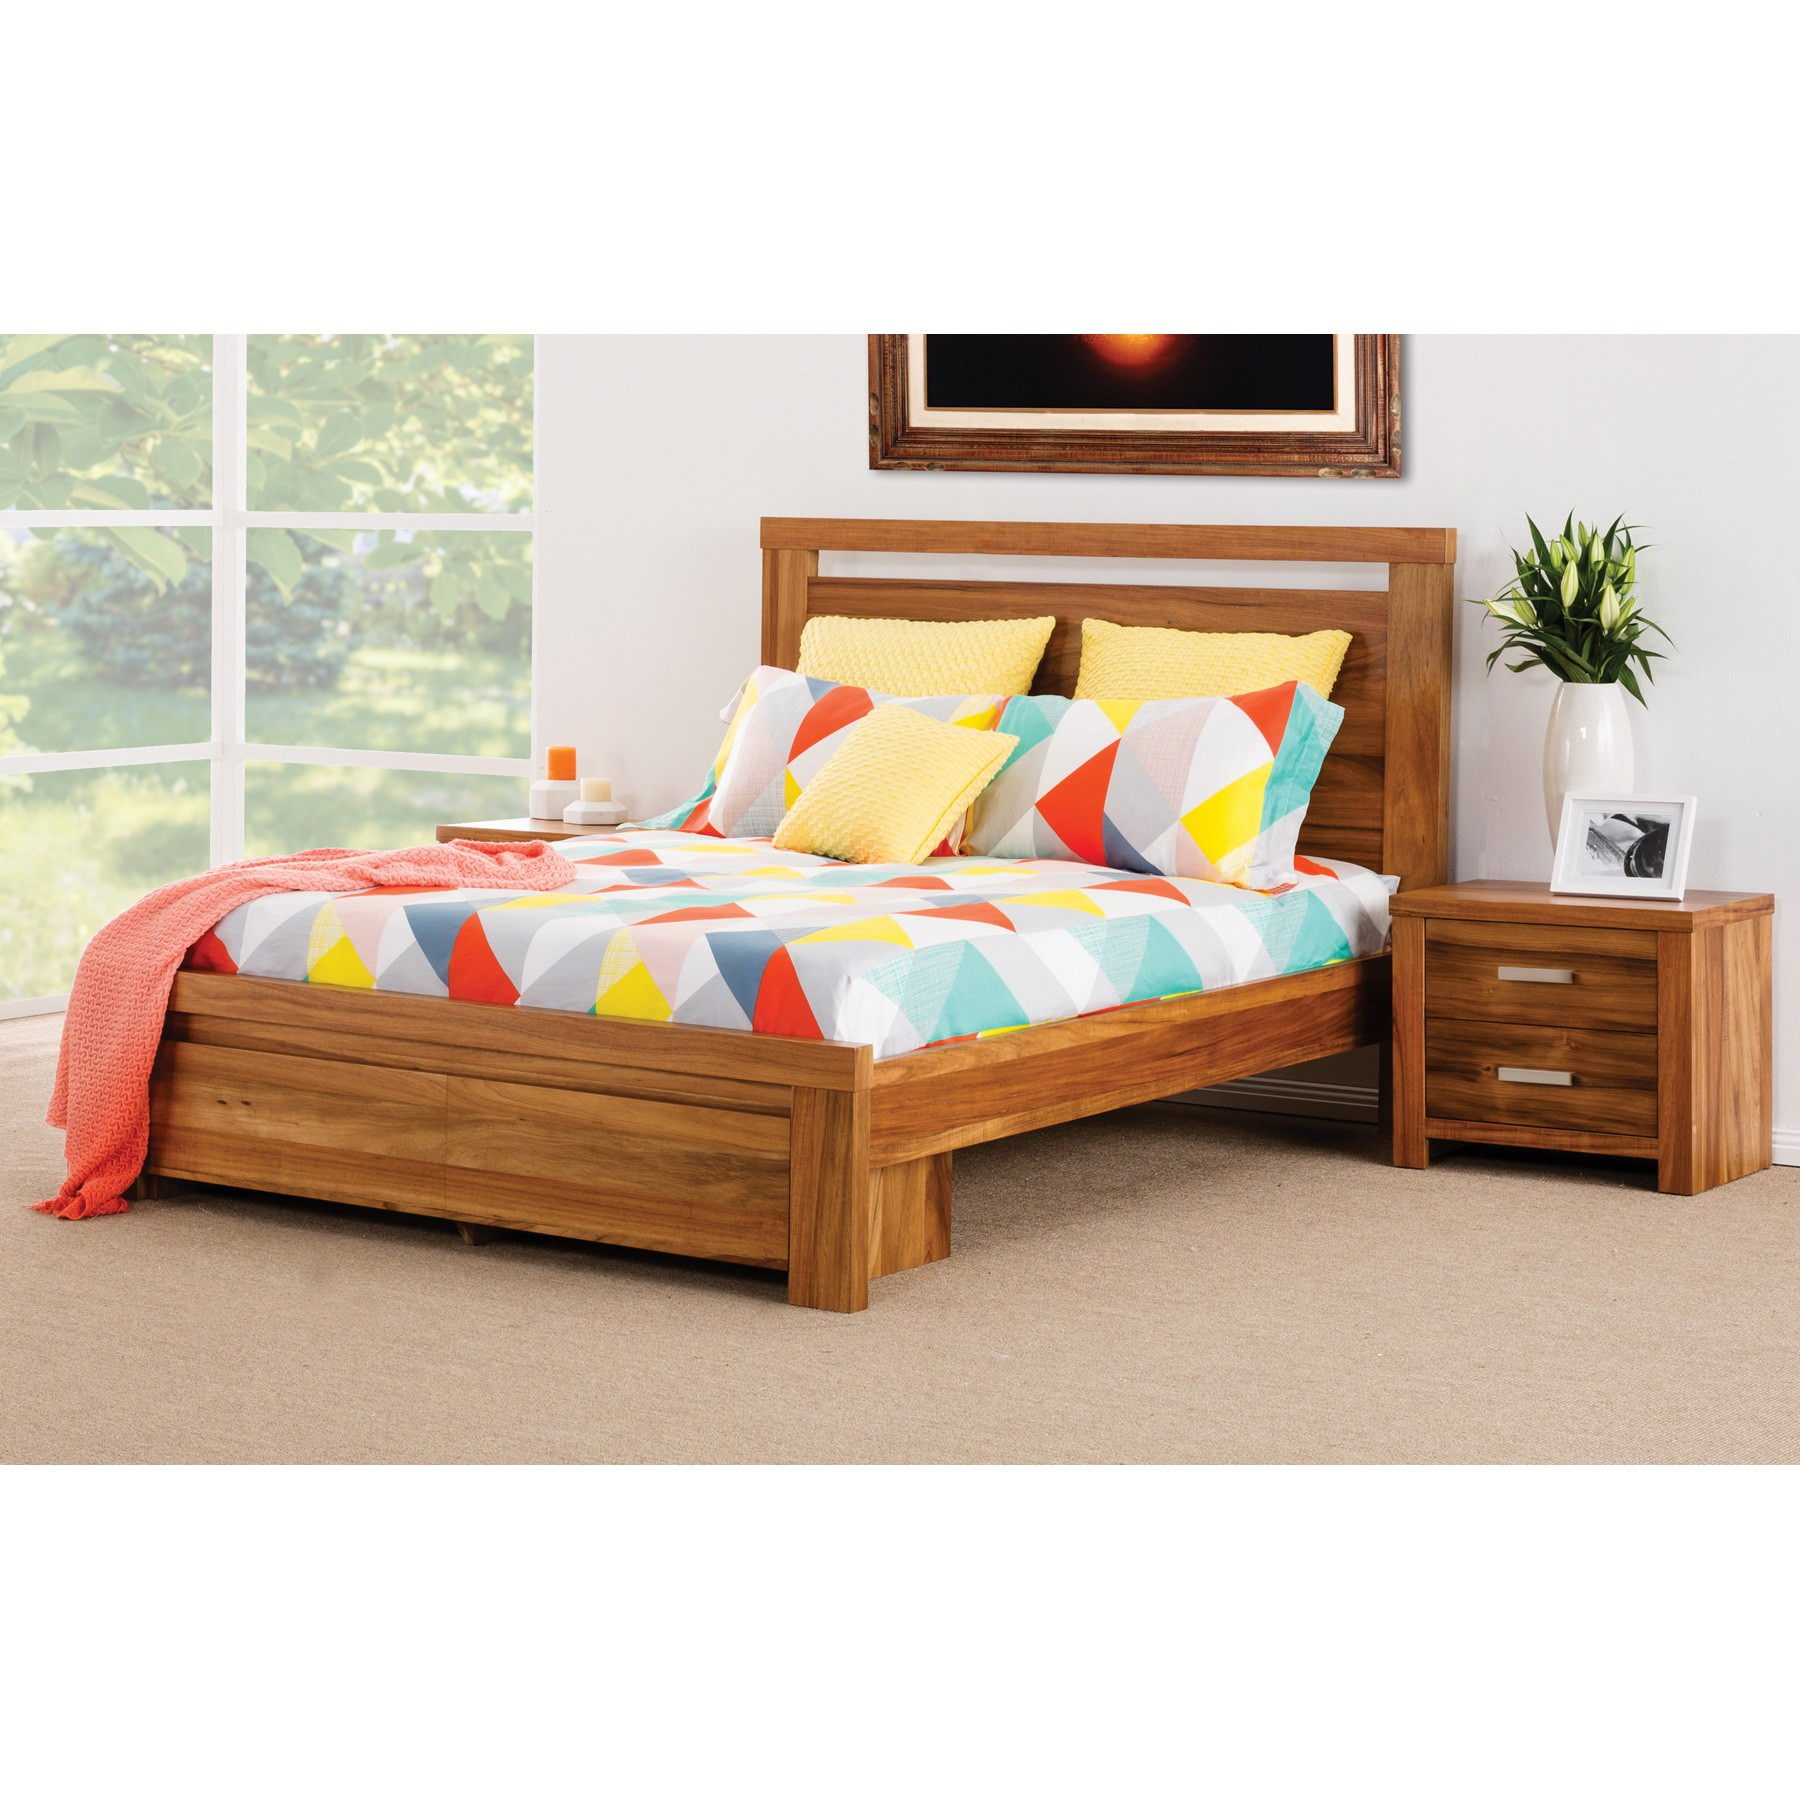 Waratah Wooden Bed with End Drawers, Queen